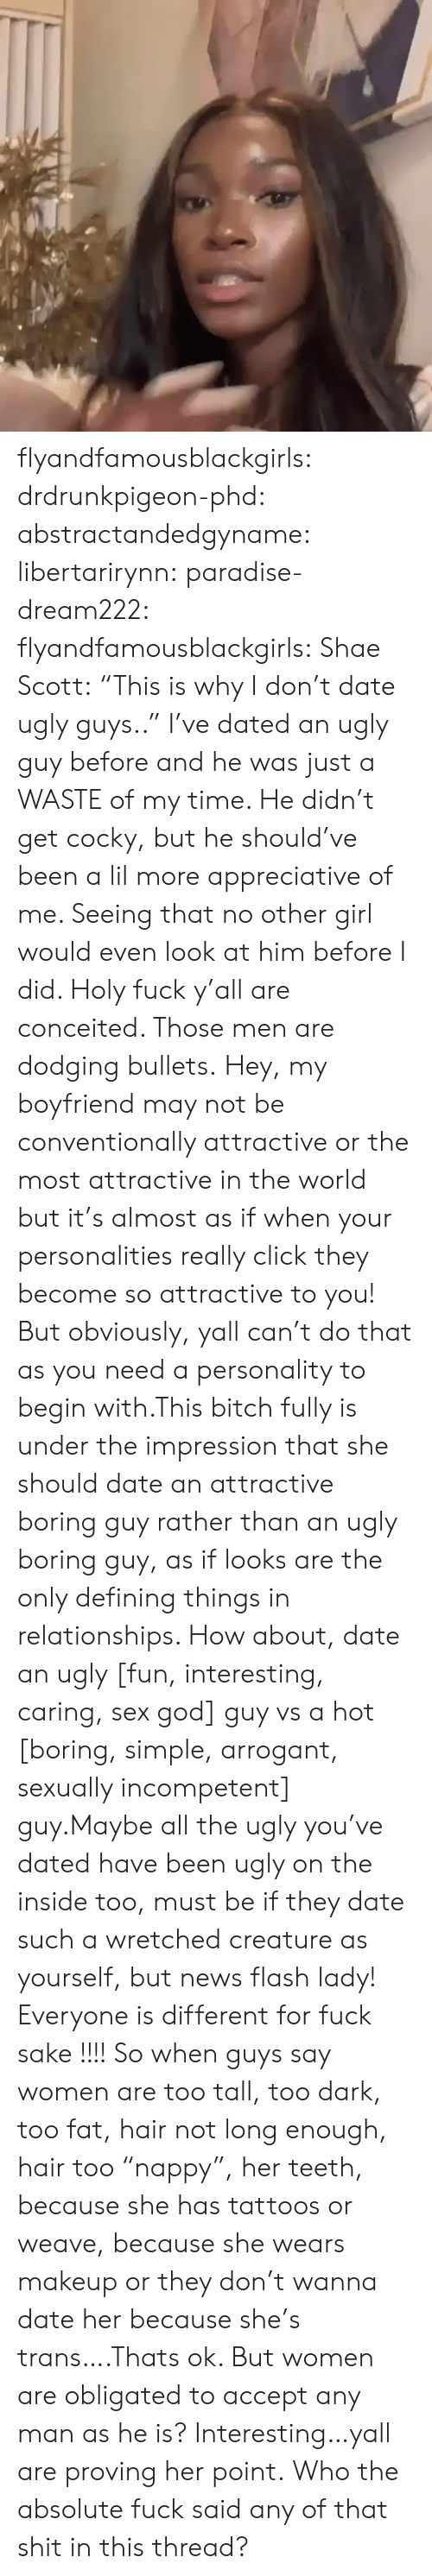 "Bitch, Click, and God: flyandfamousblackgirls:  drdrunkpigeon-phd:  abstractandedgyname:  libertarirynn:  paradise-dream222:  flyandfamousblackgirls:  Shae Scott: ""This is why I don't date ugly guys..""  I've dated an ugly guy before and he was just a WASTE of my time. He didn't get cocky, but he should've been a lil more appreciative of me. Seeing that no other girl would even look at him before I did.   Holy fuck y'all are conceited. Those men are dodging bullets.    Hey, my boyfriend may not be conventionally attractive or the most attractive in the world but it's almost as if when your personalities really click they become so attractive to you! But obviously, yall can't do that as you need a personality to begin with.This bitch fully is under the impression that she should date an attractive boring guy rather than an ugly boring guy, as if looks are the only defining things in relationships. How about, date an ugly [fun, interesting, caring, sex god] guy vs a hot [boring, simple, arrogant, sexually incompetent] guy.Maybe all the ugly you've dated have been ugly on the inside too, must be if they date such a wretched creature as yourself, but news flash lady! Everyone is different for fuck sake !!!!  So when guys say women are too tall, too dark, too fat, hair not long enough, hair too ""nappy"", her teeth, because she has tattoos or weave, because she wears makeup or they don't wanna date her because she's trans….Thats ok. But women are obligated to accept any man as he is? Interesting…yall are proving her point.  Who the absolute fuck said any of that shit in this thread?"